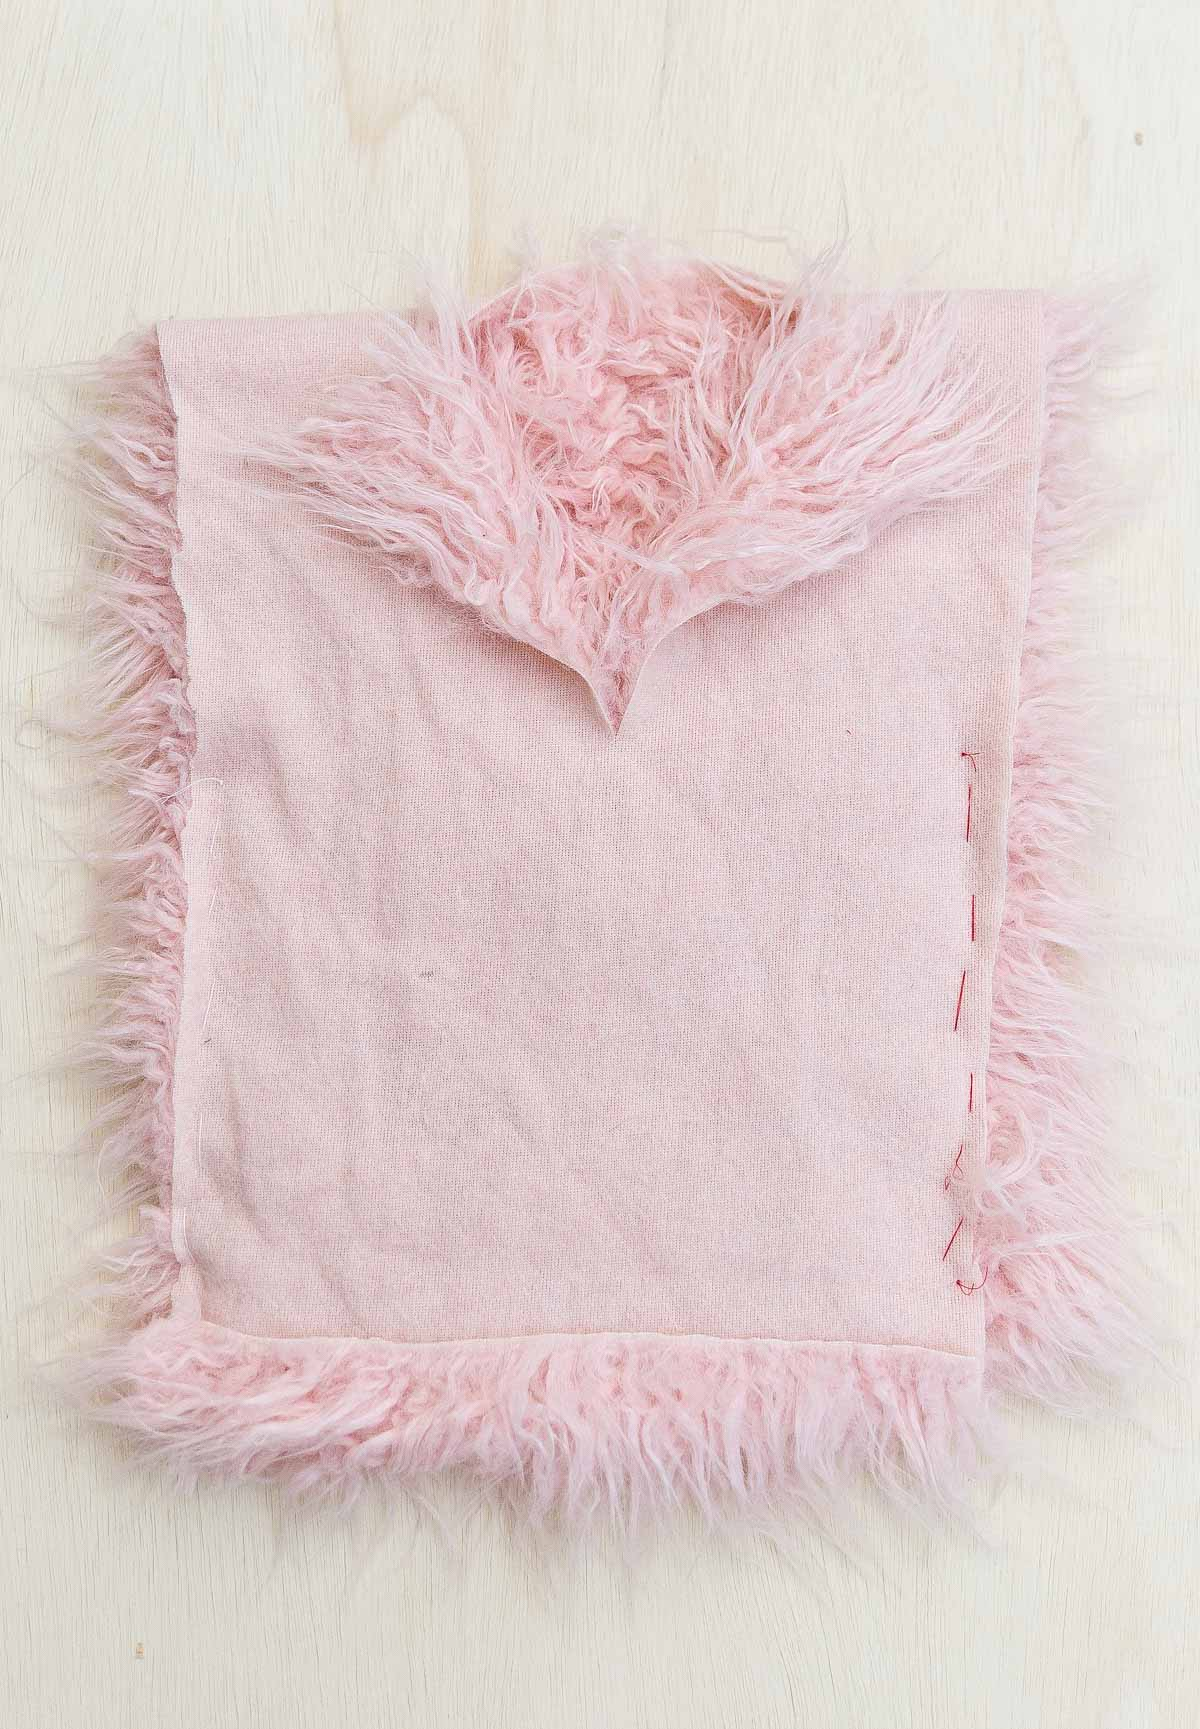 Pink faux fur being made into a bird costume.